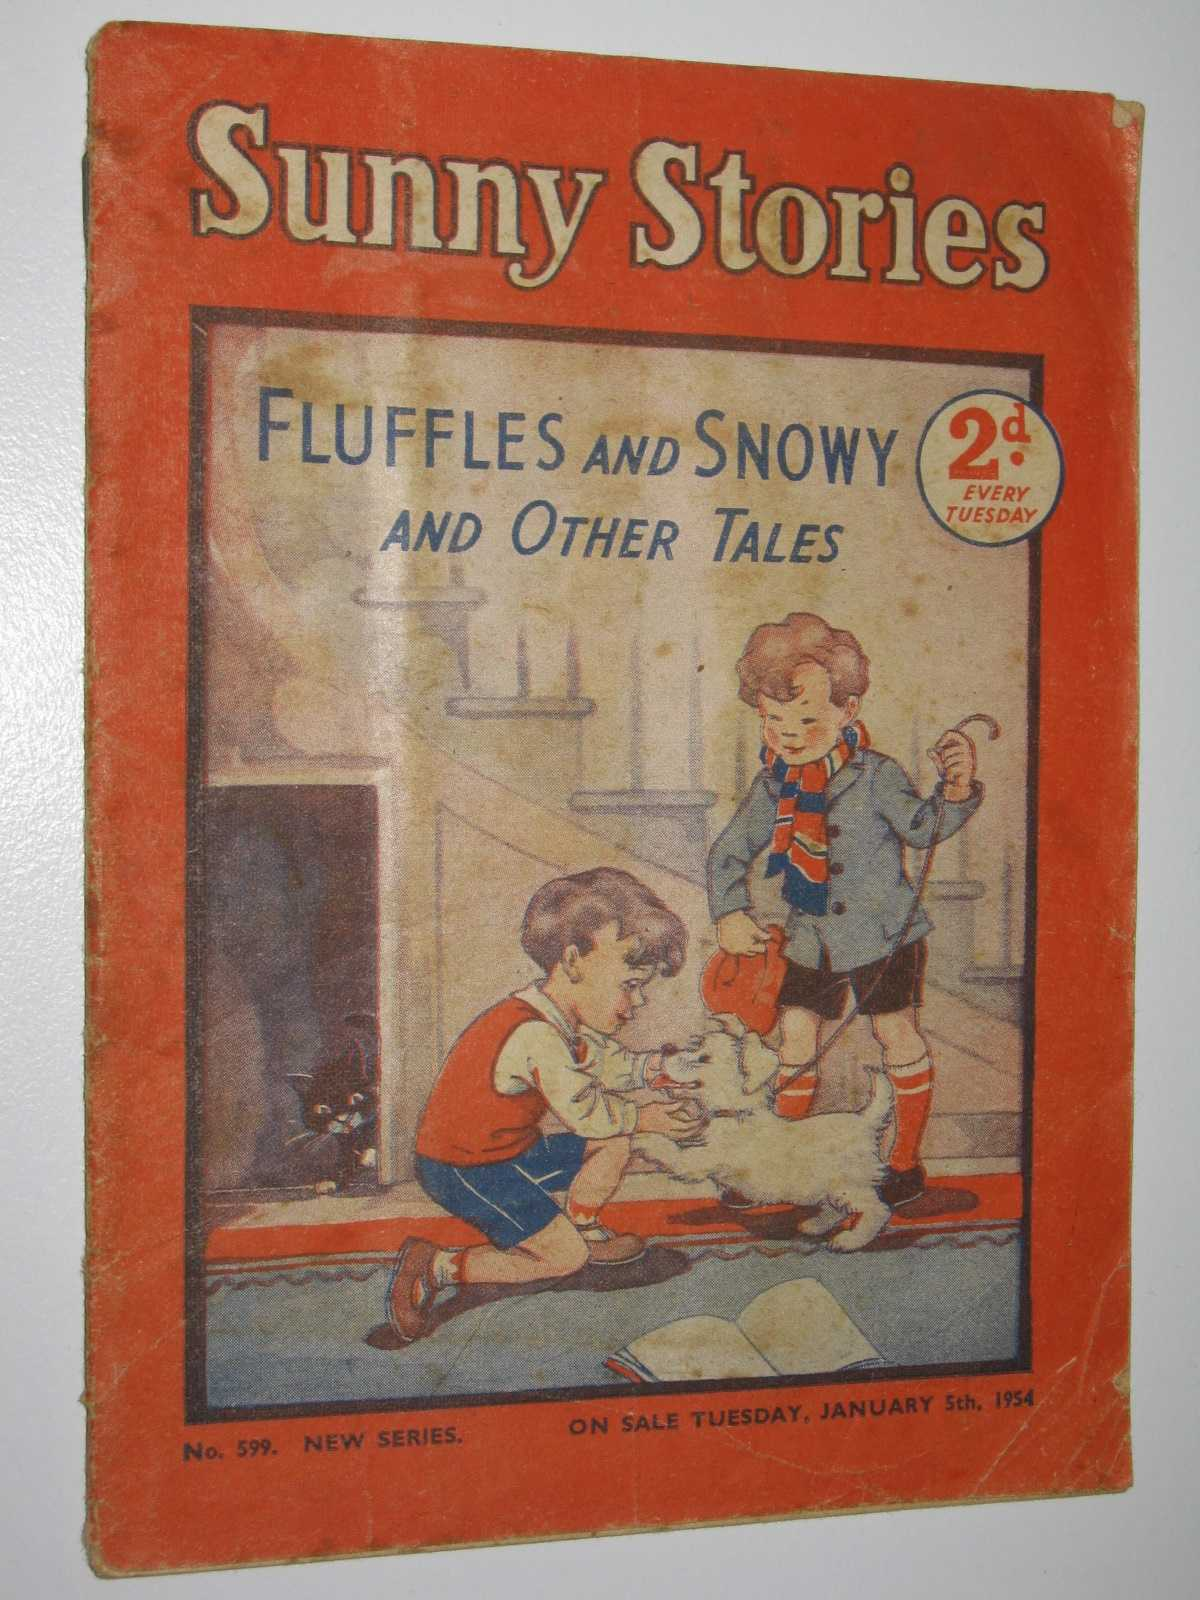 Image for Sunny Stories No. 599 New Series : Fluffles and Snowy and Other Tales